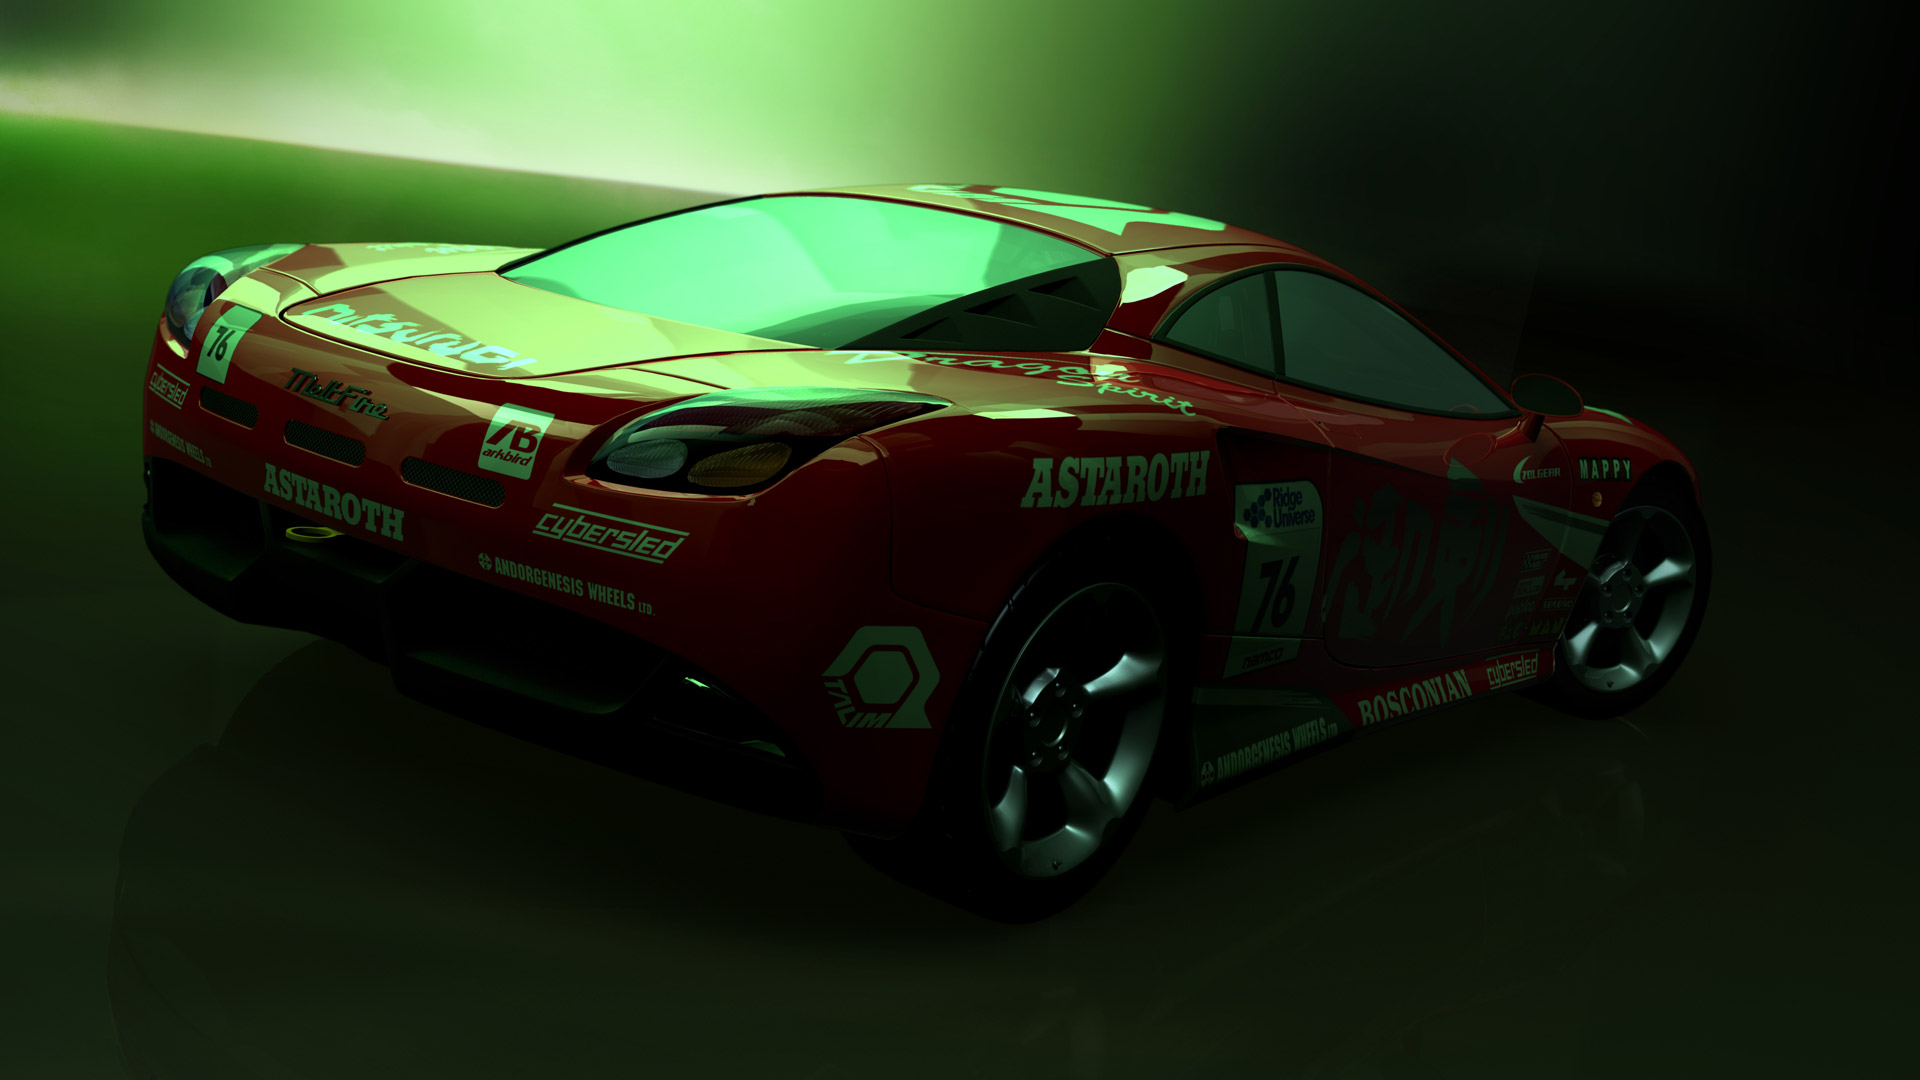 Ridge Racer 6 Wallpaper in 1920x1080